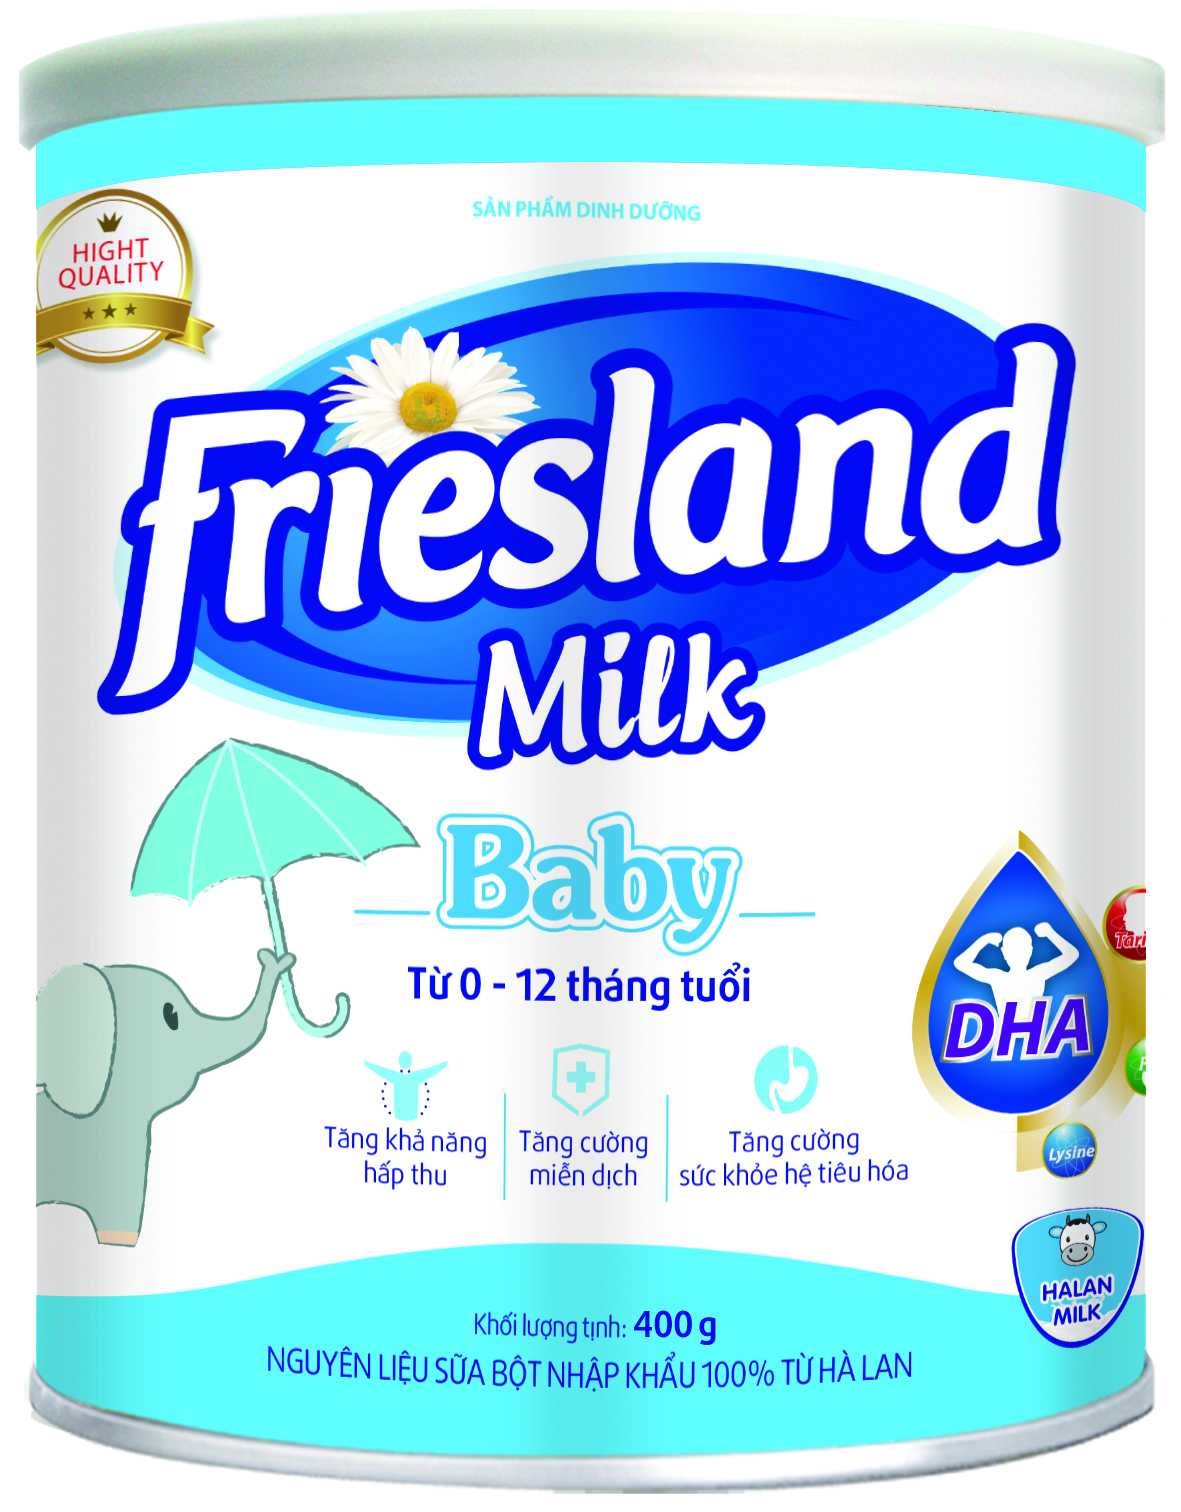 FRIESLAND MILK BABY 400g